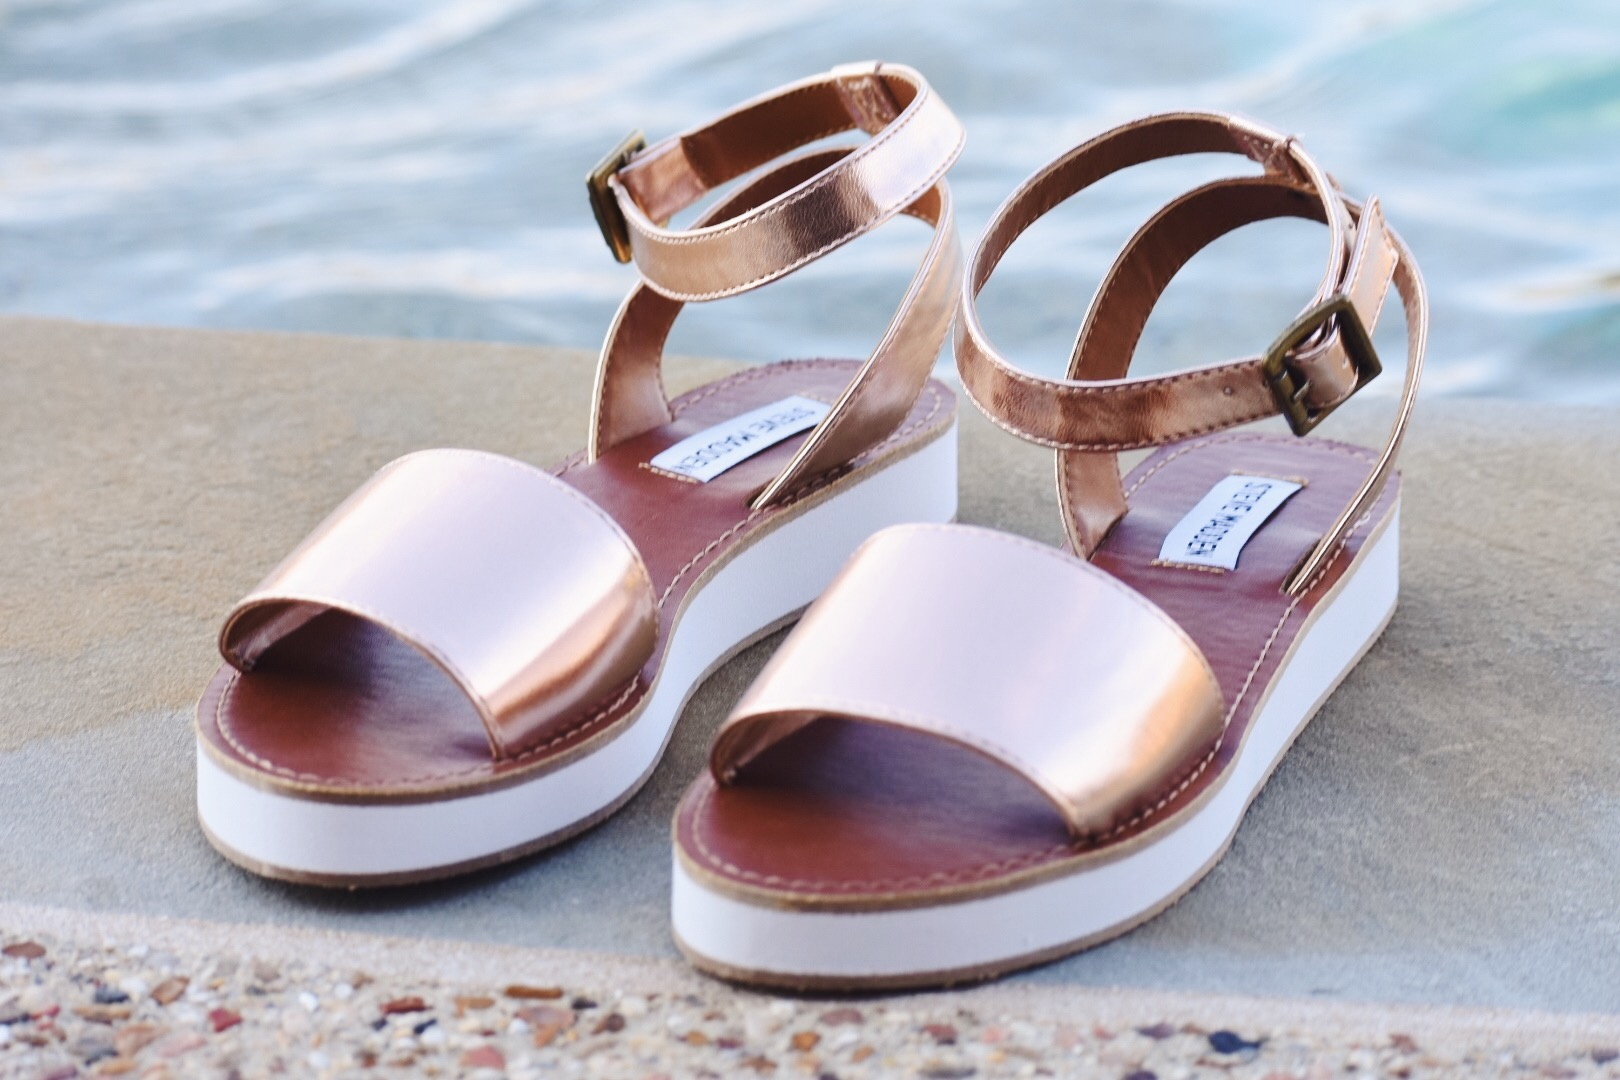 Blush pink is my favorite neutral for spring! - Steve Madden is a fantastic shoe designer. His shoes are always trendy enough for the season, but still classic to last more than one season. His shoes are also comfortable, which in my book, is a must for shoes. I love these sandals because the small platform make them perfect for both dressy and casual occasions. The platinum blush pink also adds some dressiness to the look.